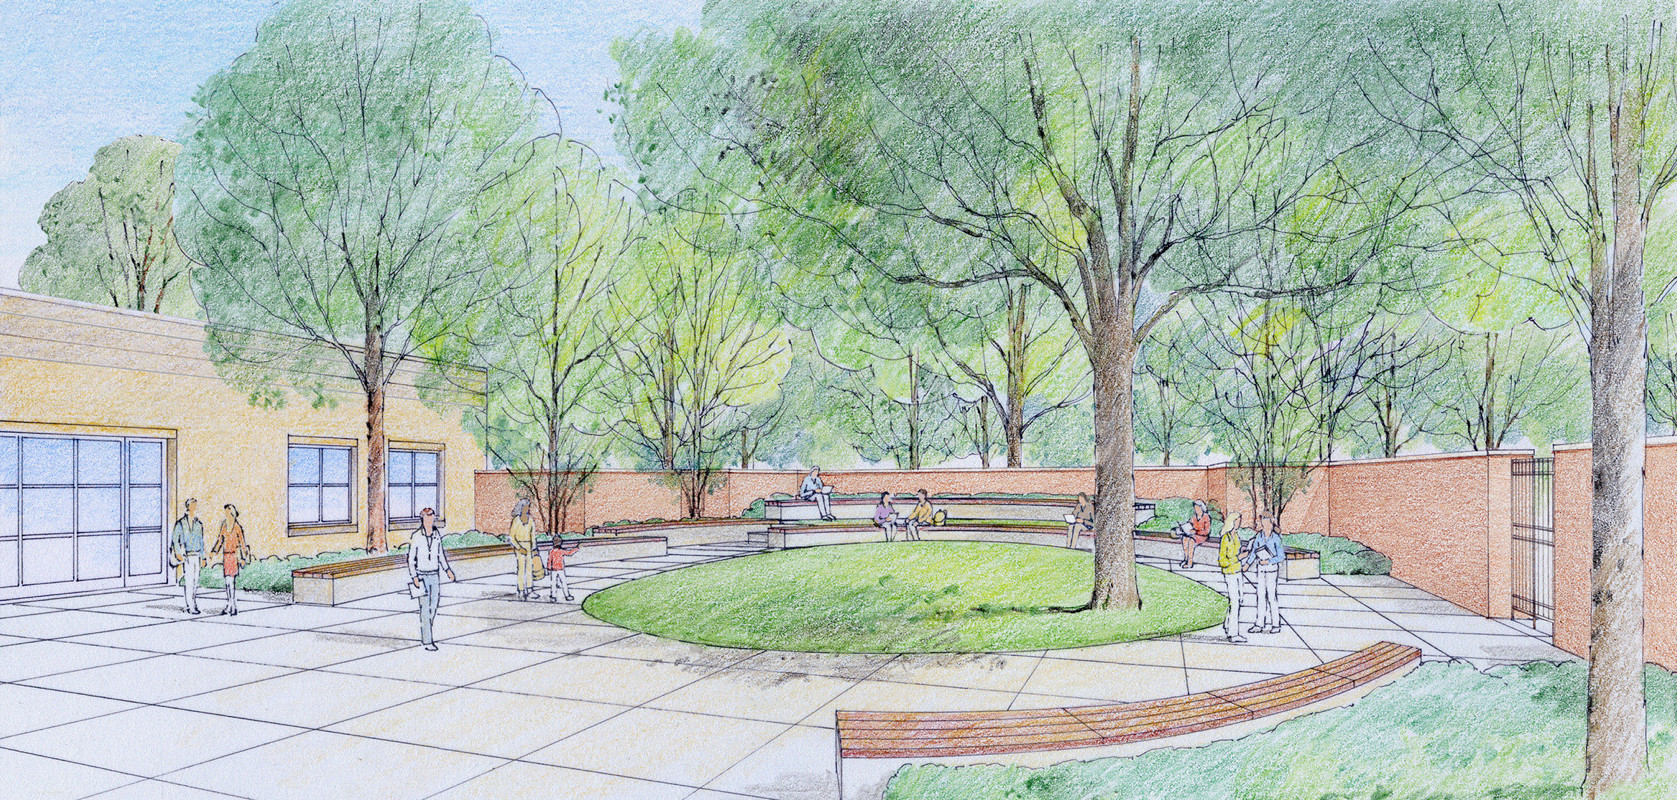 An artist's rendering of the planned outdoor reading garden at the East Meadow Public Library. The garden will be enclosed by brick walls and will be open to the community during library hours.